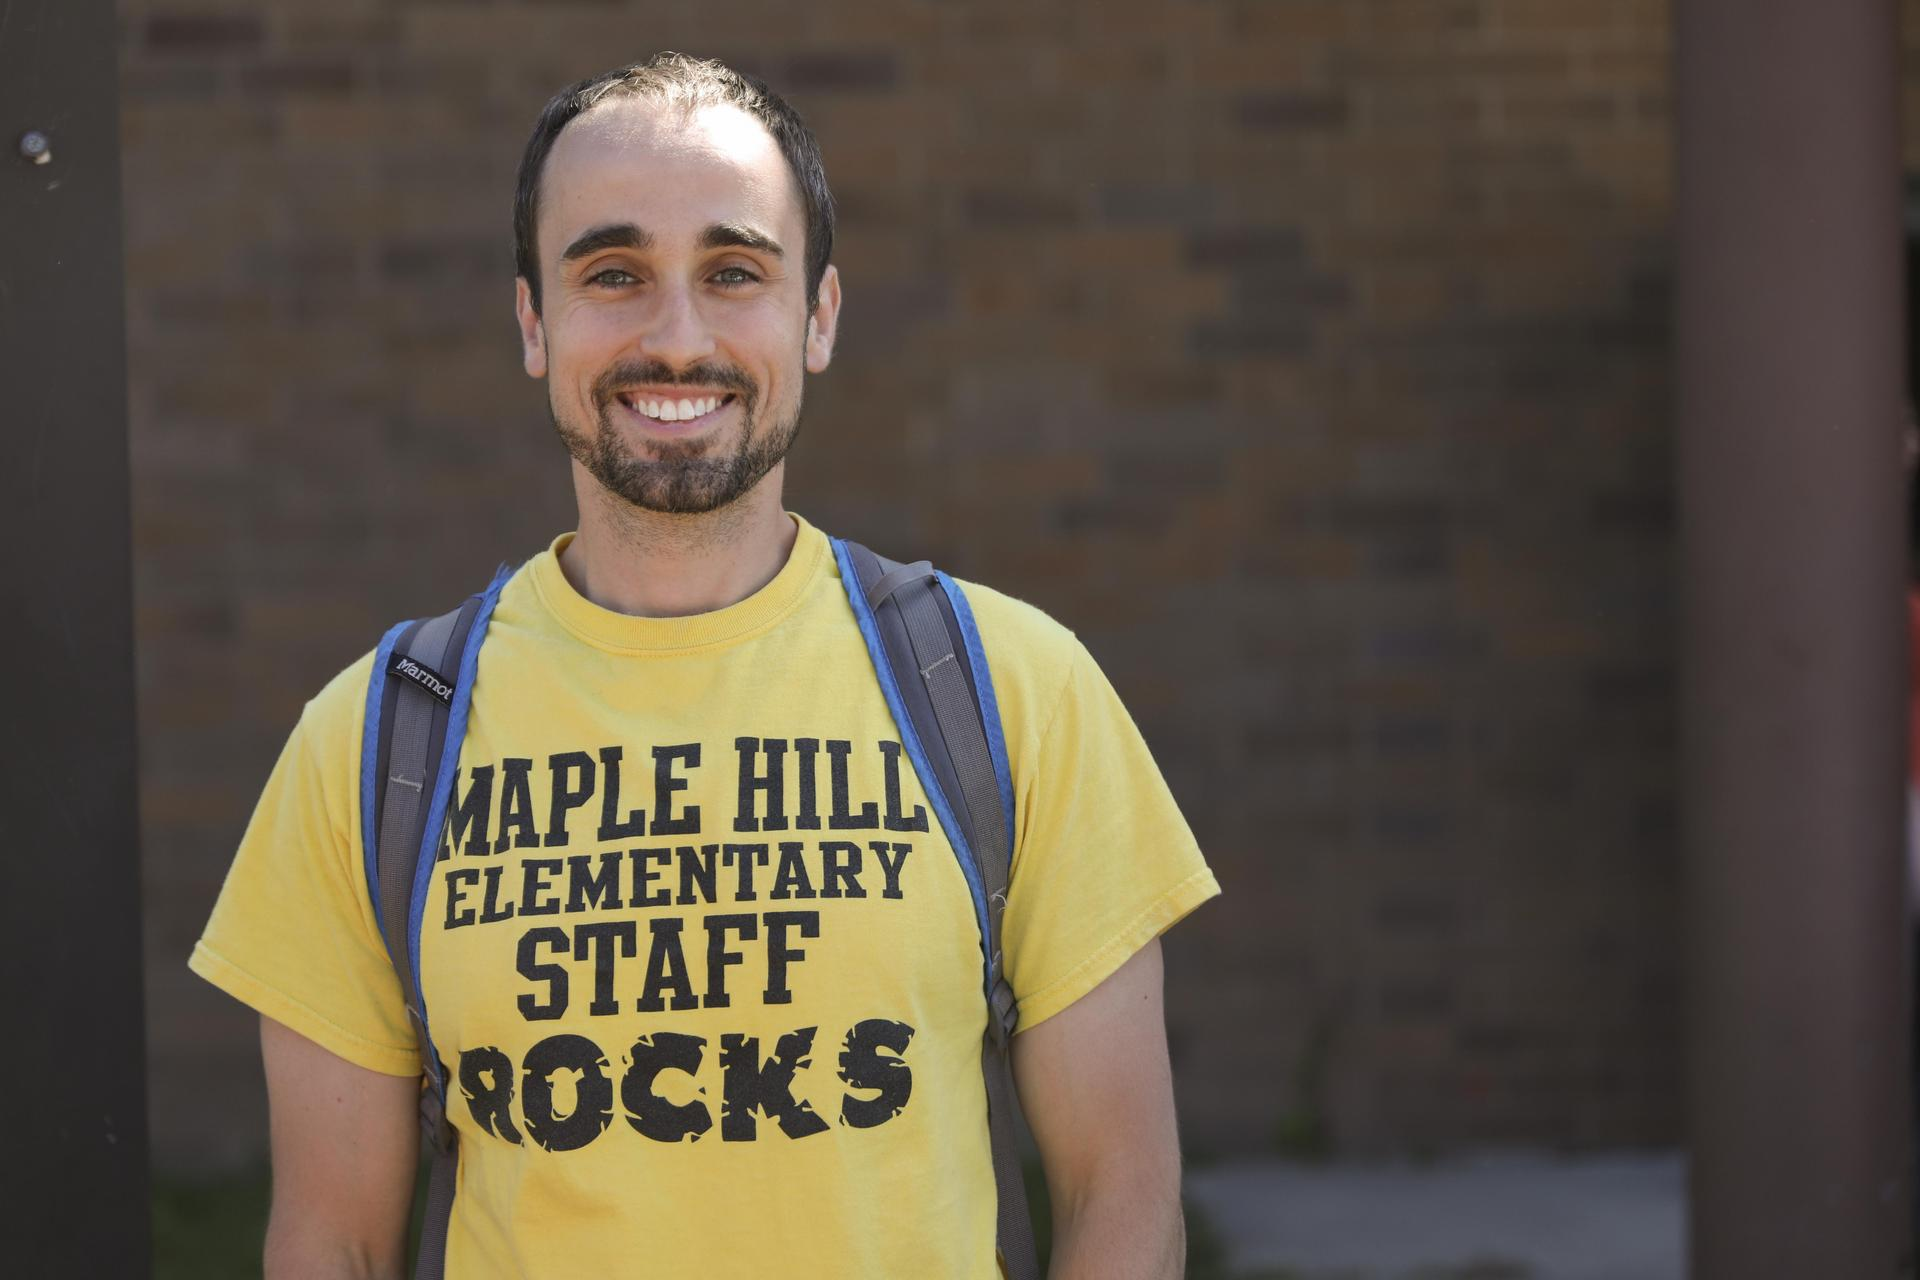 "Maple Hill Elementary School teacher wearing t-shirt that says ""Maple Hill Elementary Staff Rocks."""